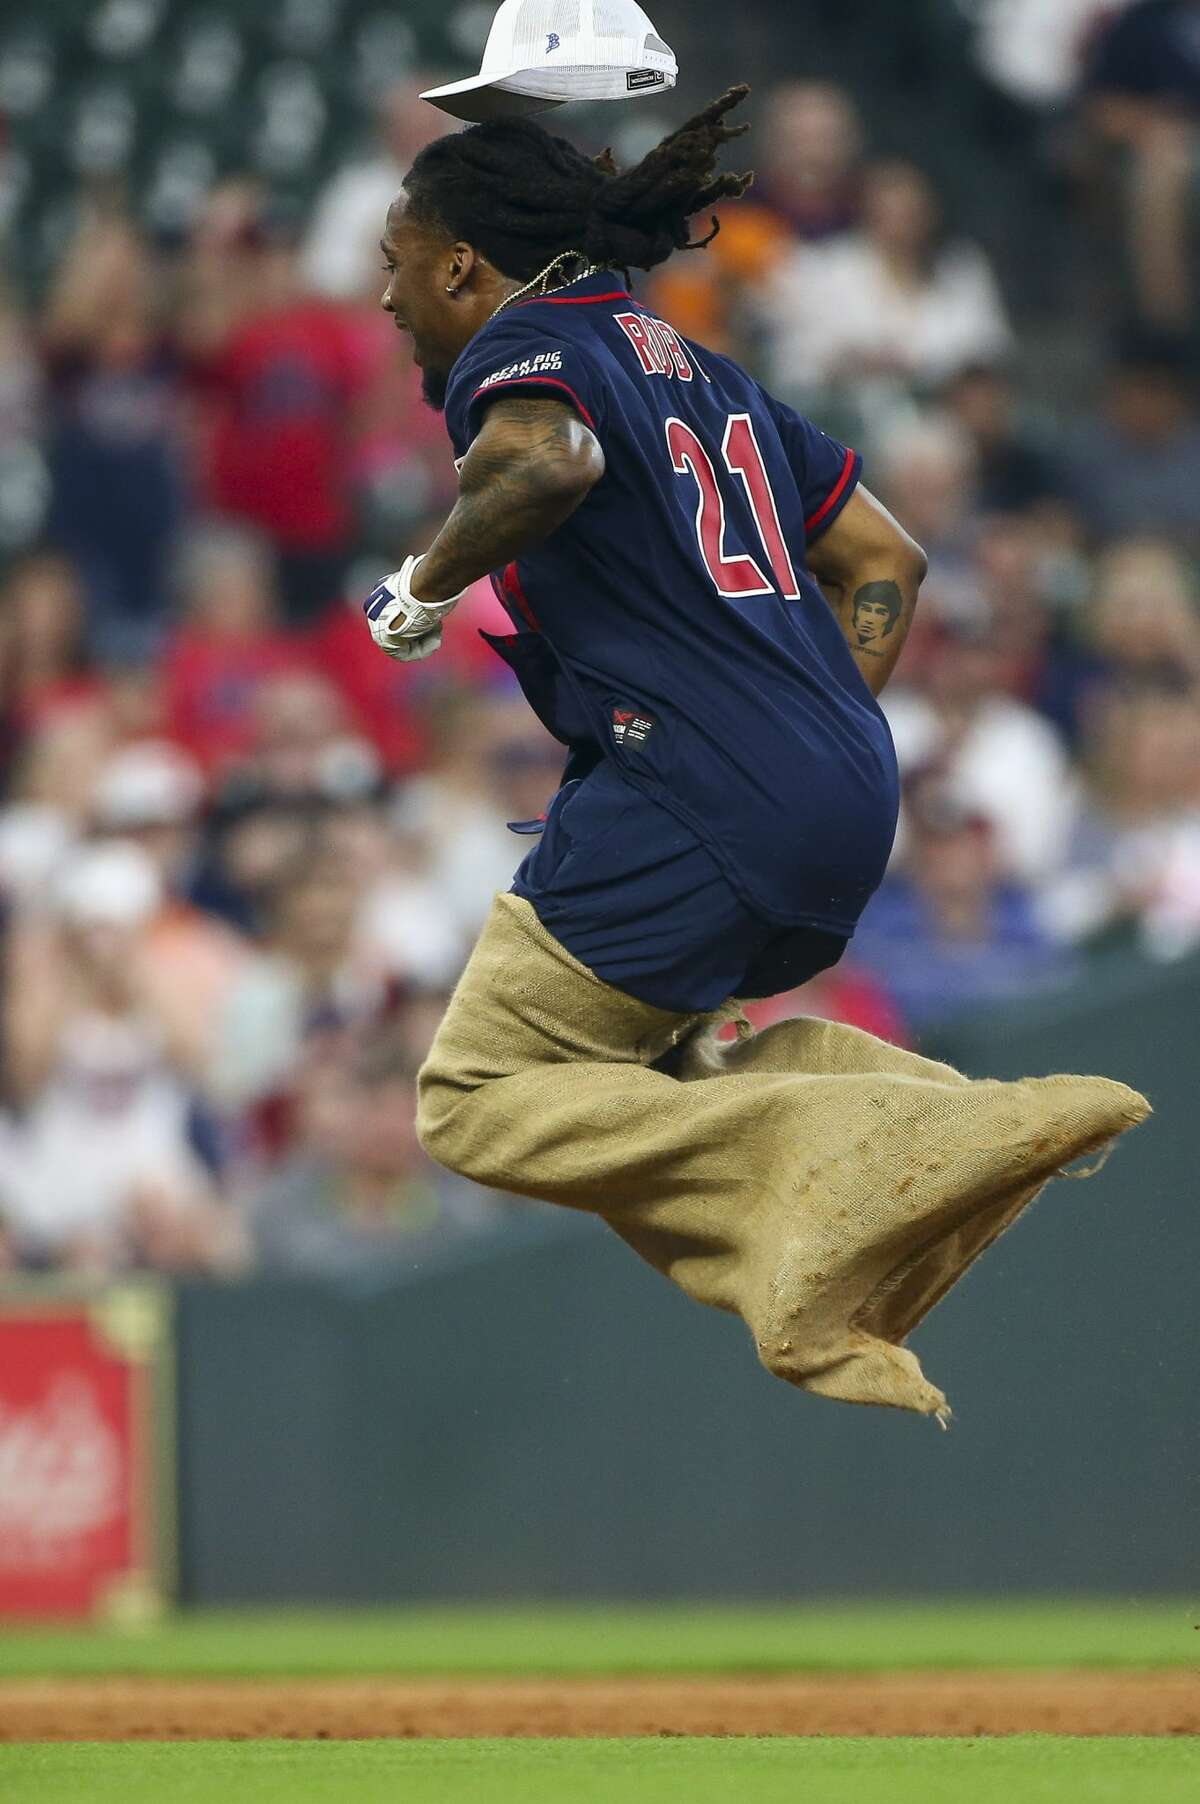 Houston Texans cornerback Bradley Roby competes in a sack race against the defense during the J.J. Watt Foundation Charity Classic at Minute Maid Park Saturday, May 4, 2019, in Houston. The foundation's mission is to provide funding for middle schools across the country that have insufficient or no funding for after-school athletic programs.